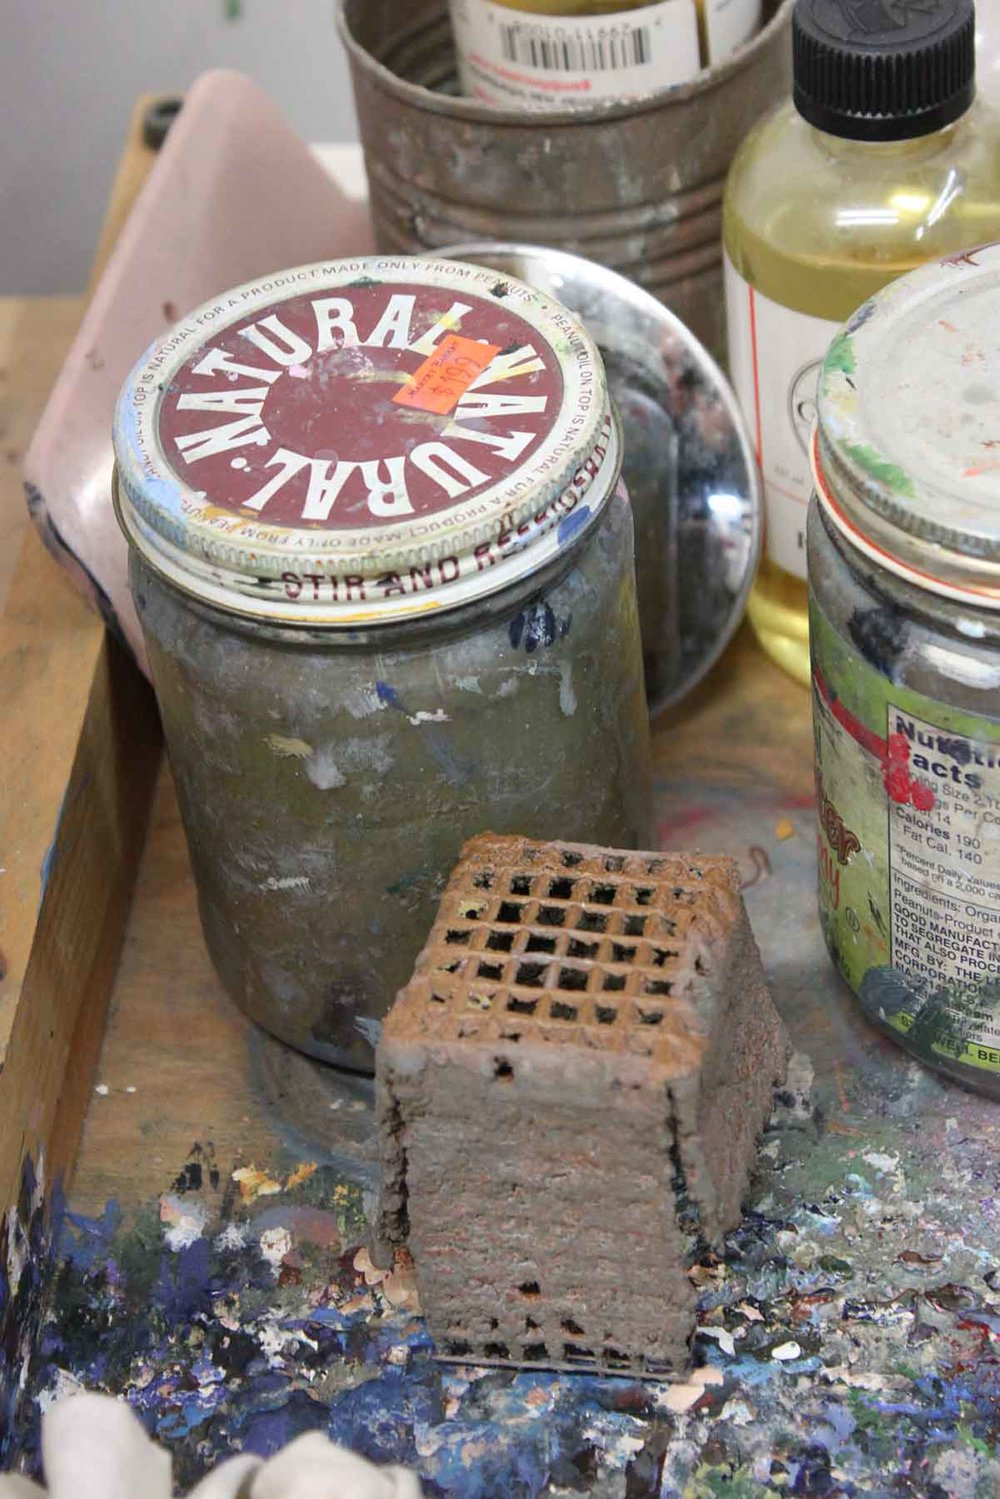 I've known about grates in jars of thinners since school, but I never favored them. However, your blog urged me to experiment again, and I like how they reduce maintenance. I use two jars of thinner, one dirtier for an initial cleaning, and another cleaner one for a second. Over time, I can clean all the sediment out of the dirty jar, fill with fresh thinner, and designate it as the new clean jar.